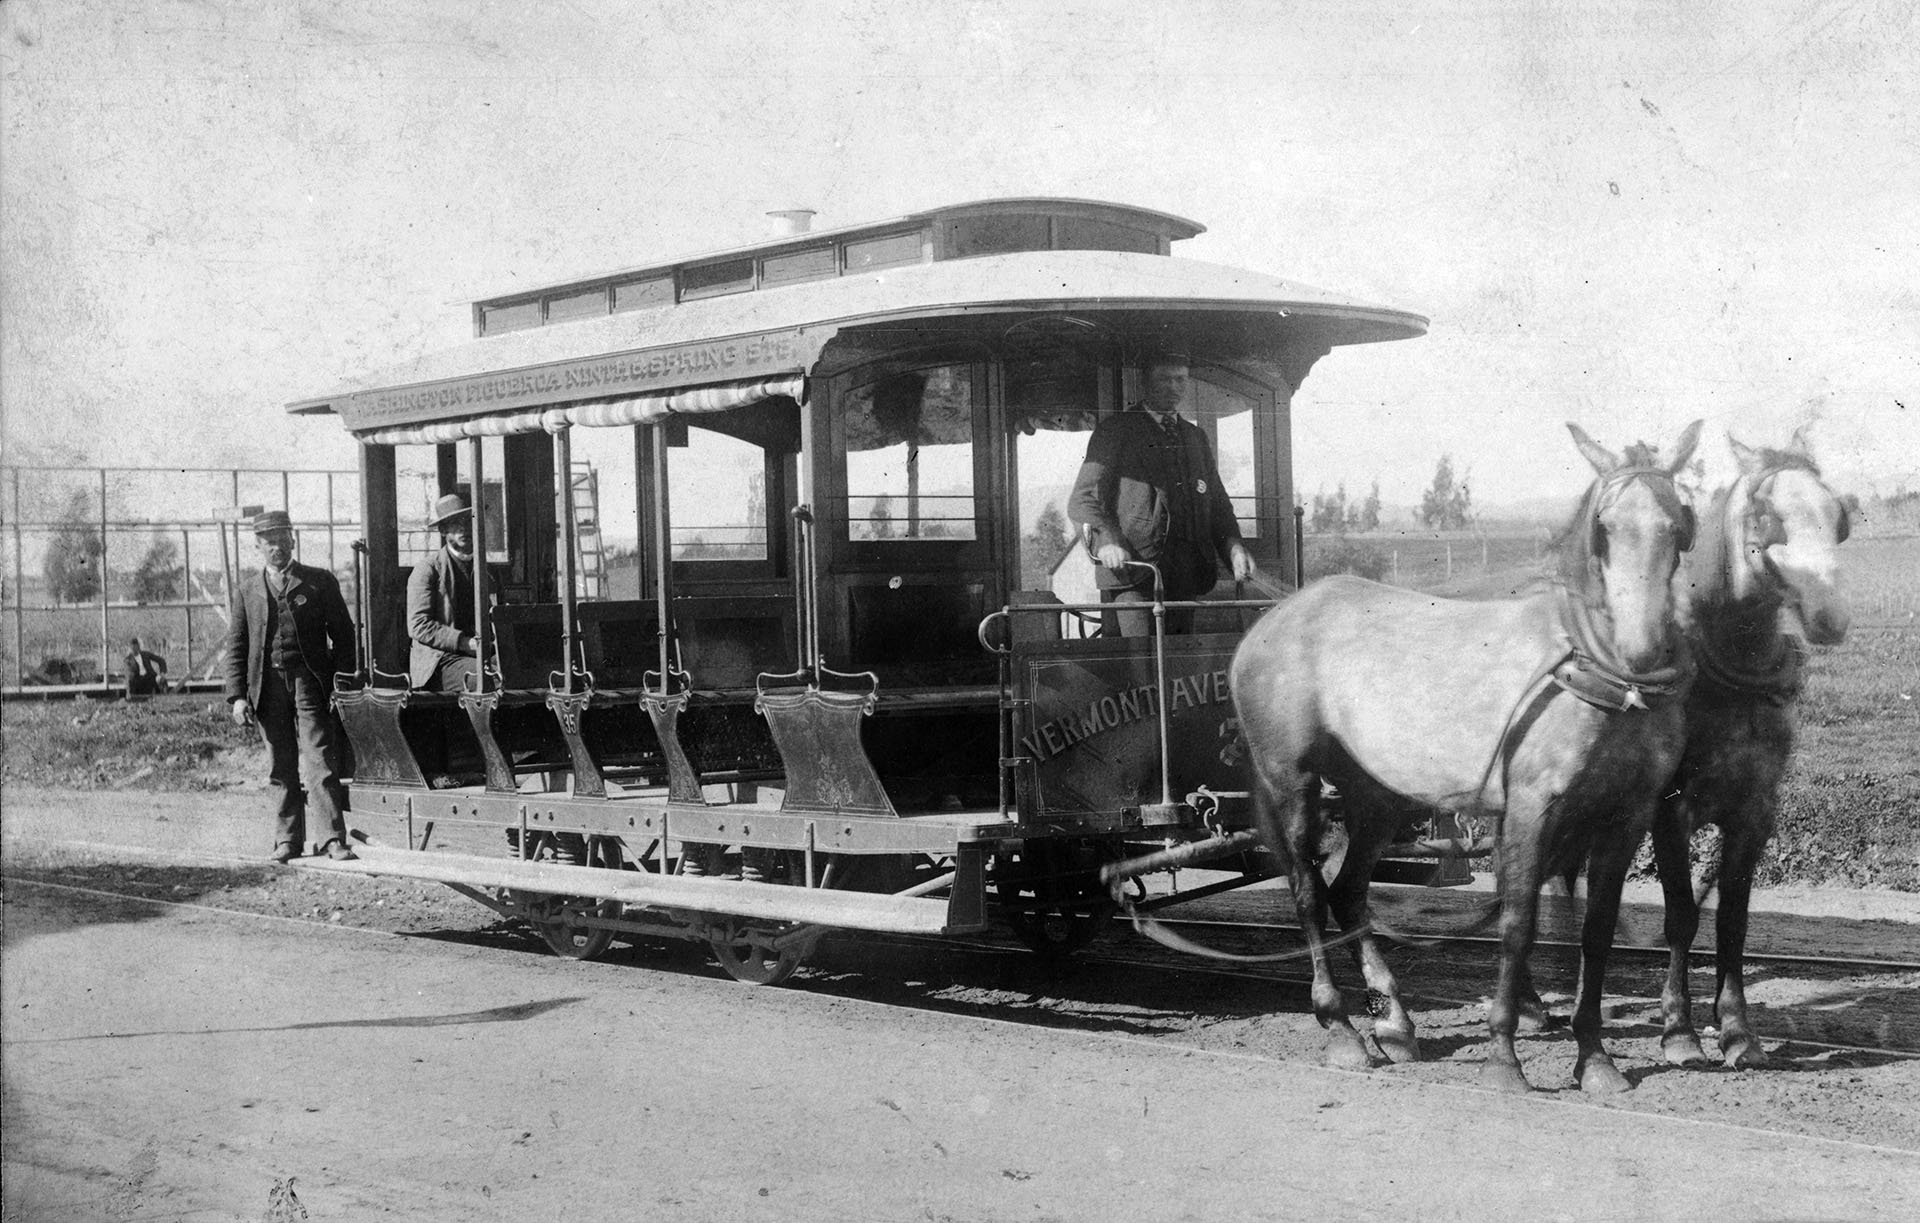 A Los Angeles example of a horse-drawn omnibus trolley (image from KCET Media)